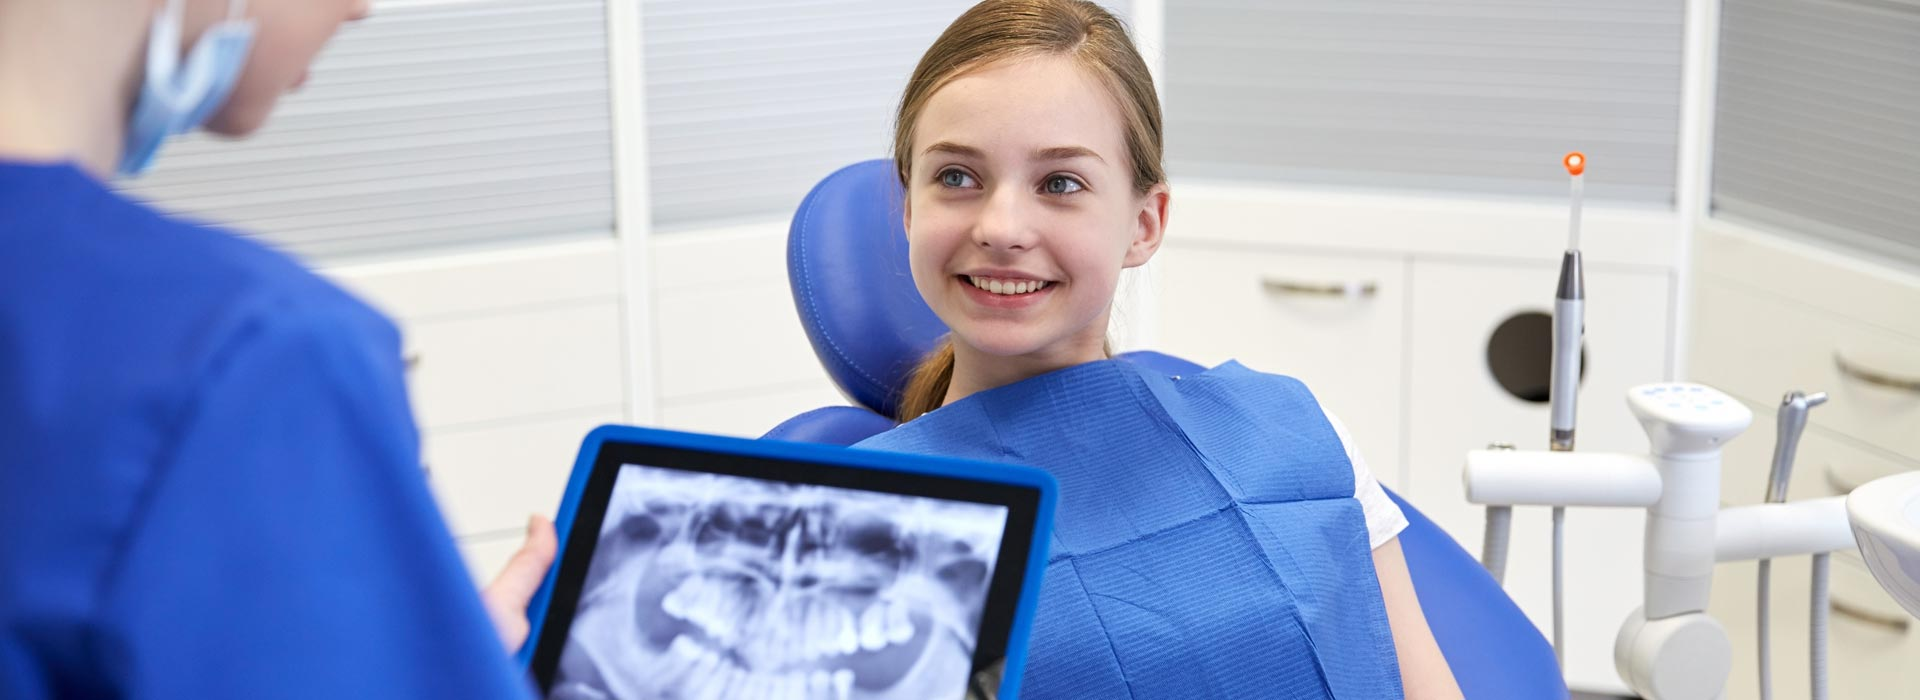 Dental assistant showing digital X-rays to patient